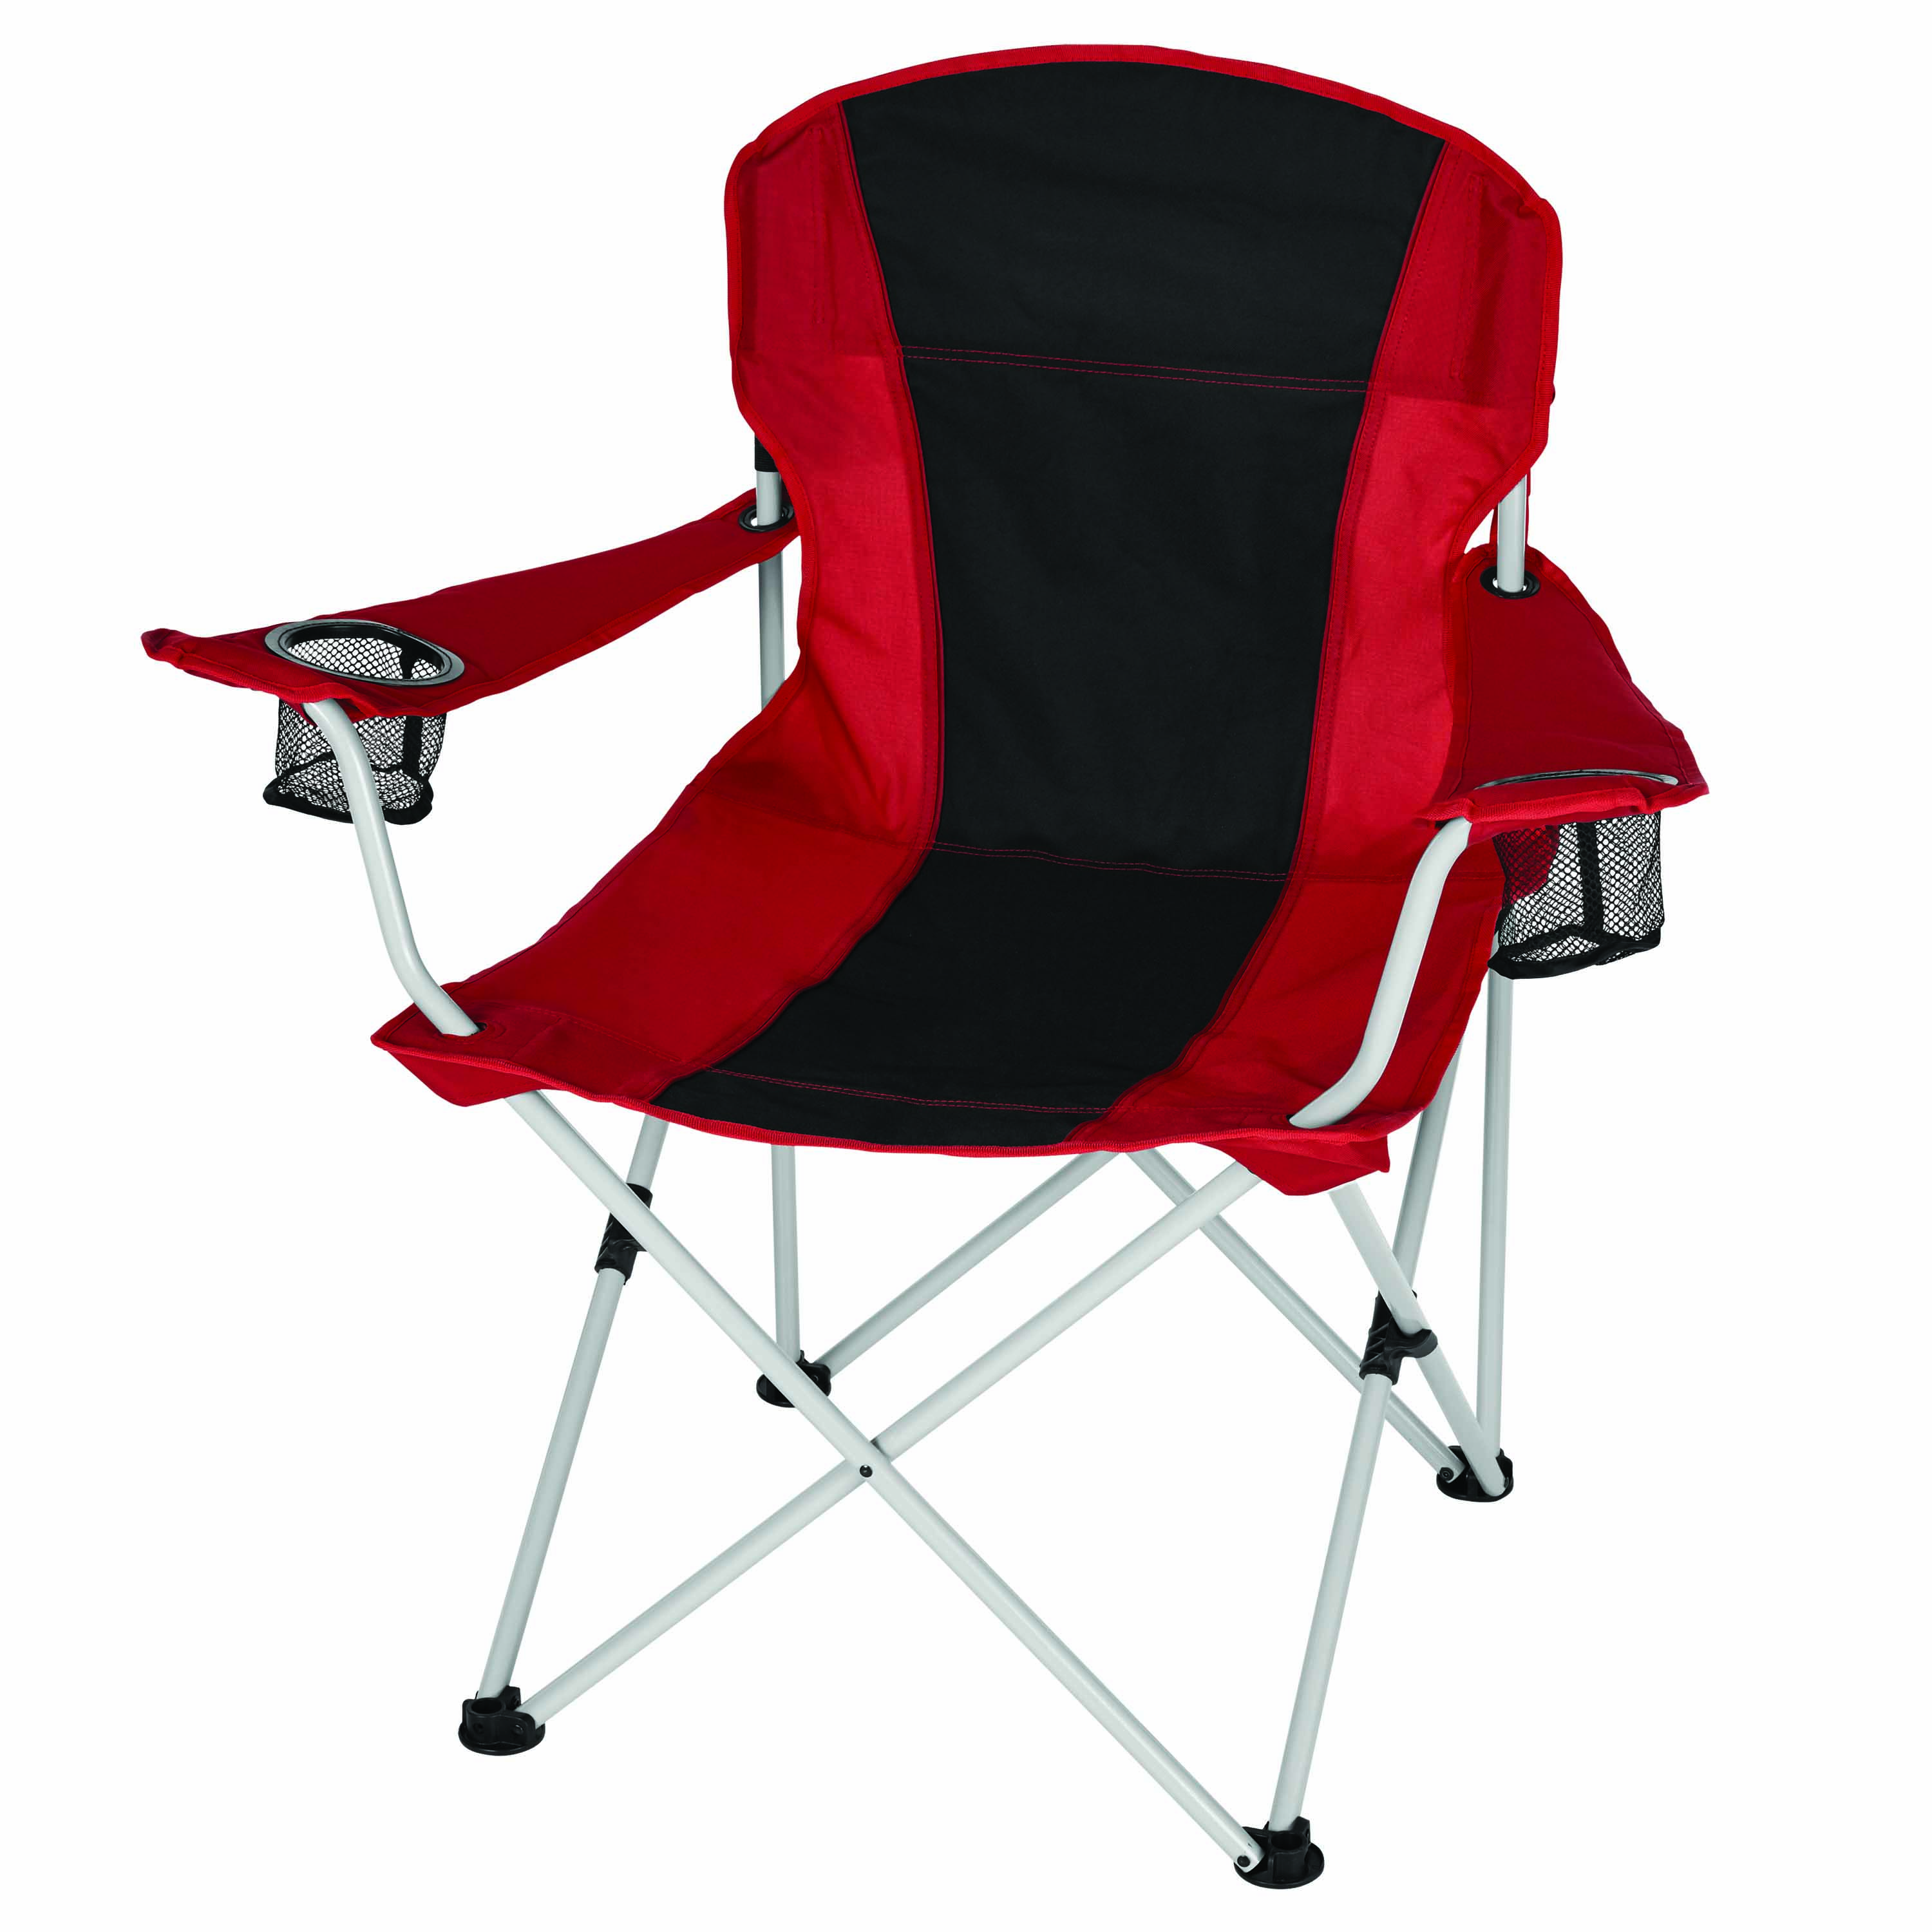 Trail Chair Ozark Trail Oversized Chair Red Black Walmart